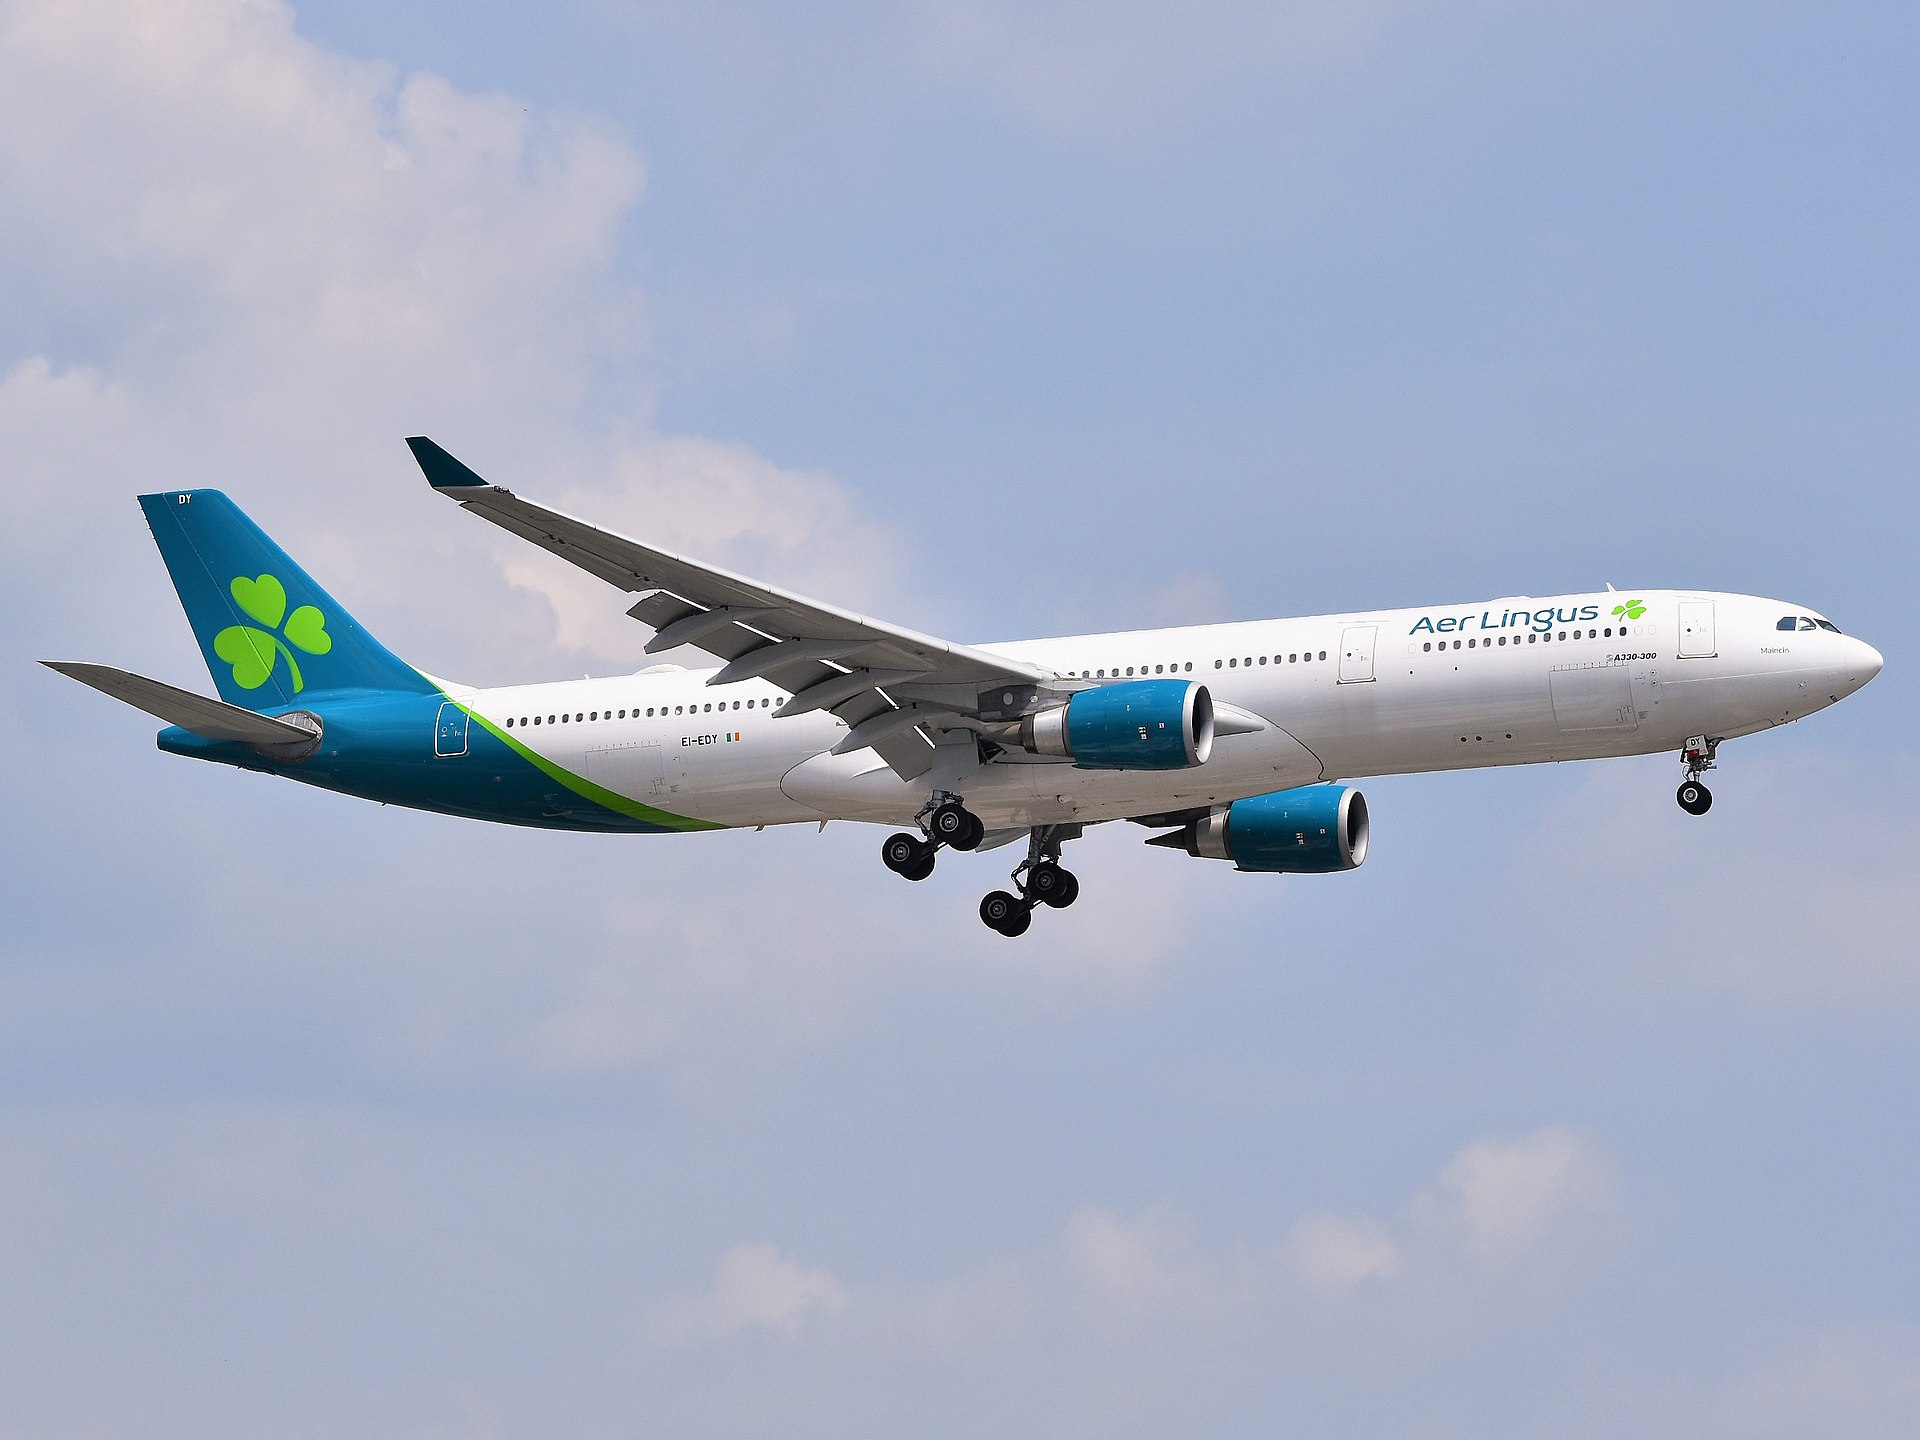 Aer Lingus — European Airlines with most canceled  flights